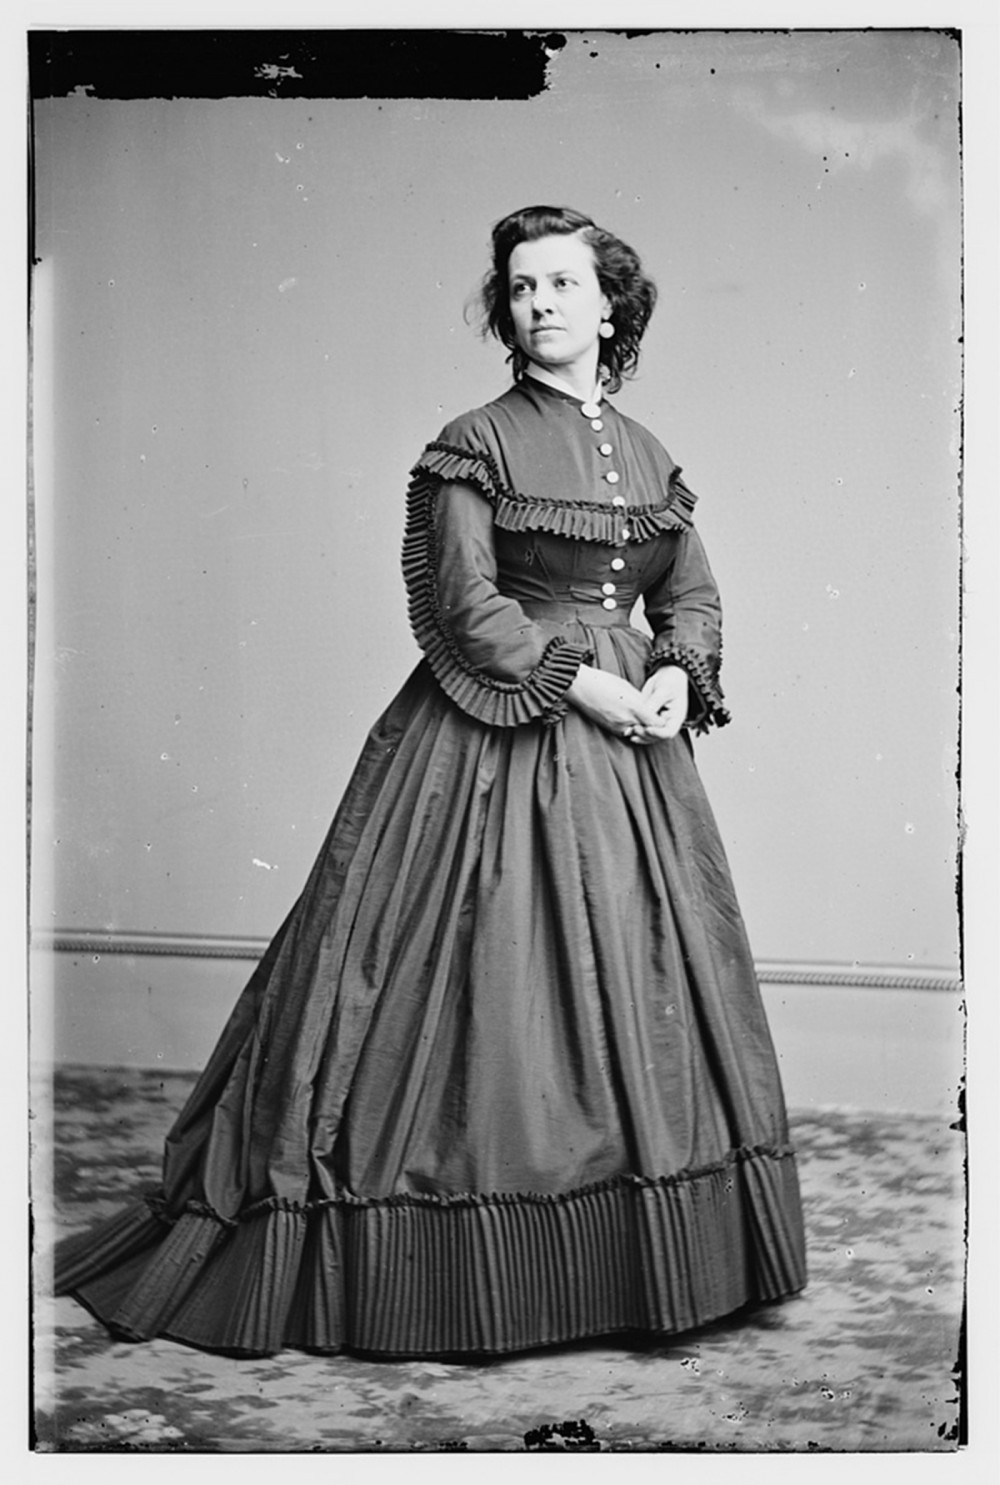 "Pauline Cushman was an American actress, a perfect occupation for a wartime spy. Using her guile to fraternize with Confederate officers, Cushman she snuck military plans and drawings to Union officials in her shoes. She was caught, tried, and sentenced to death, but was apparently saved days before her execution by the occupation of her native New Orleans by Union forces. Women like Cushman, whether spies, nurses, or textile workers, were essential to the Union war effort. ""Pauline Cushman,"" between 1855 and 1865. Library of Congress, http://www.loc.gov/pictures/item/brh2003003292/PP/."